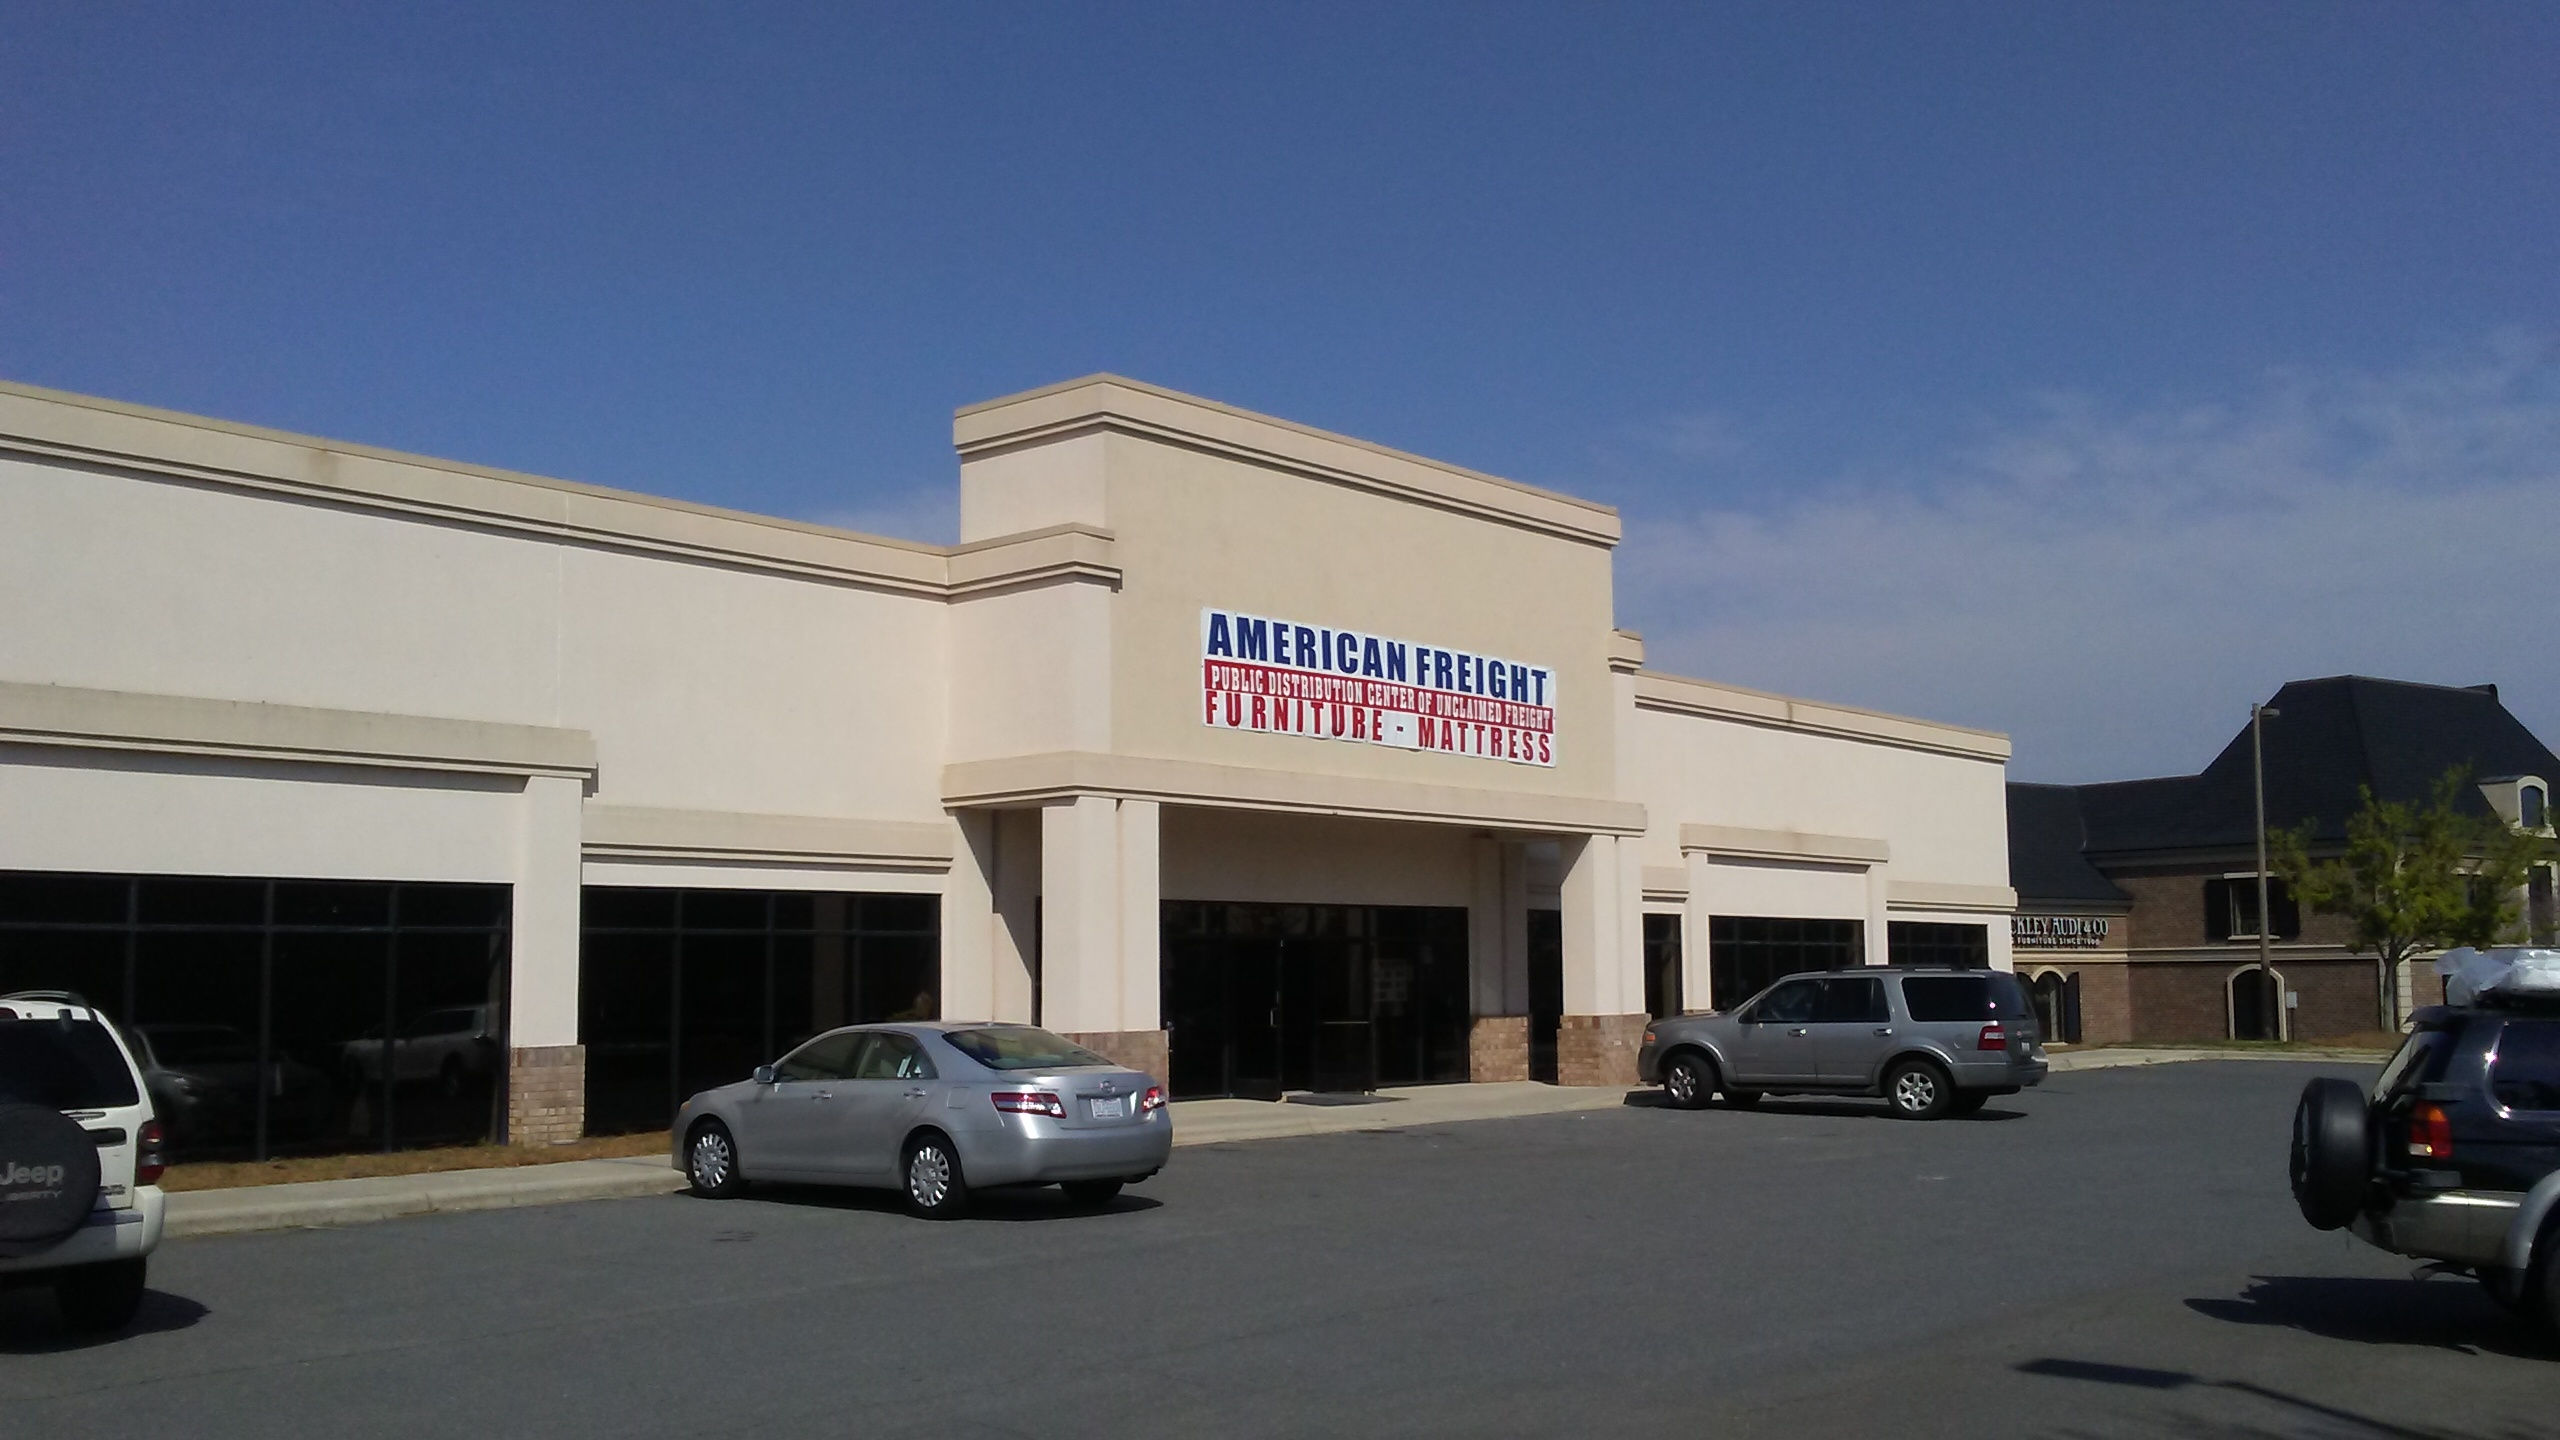 American Freight Furniture And Mattress In Charlotte, NC